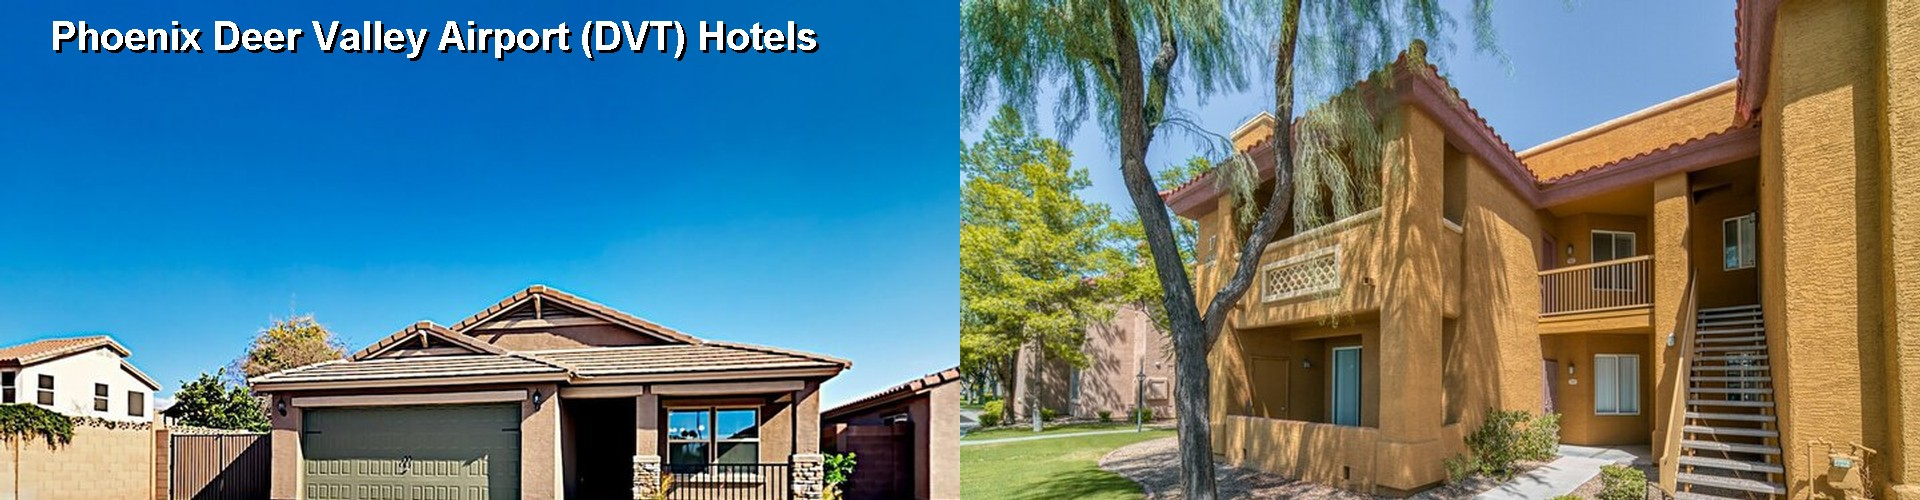 5 Best Hotels near Phoenix Deer Valley Airport (DVT)